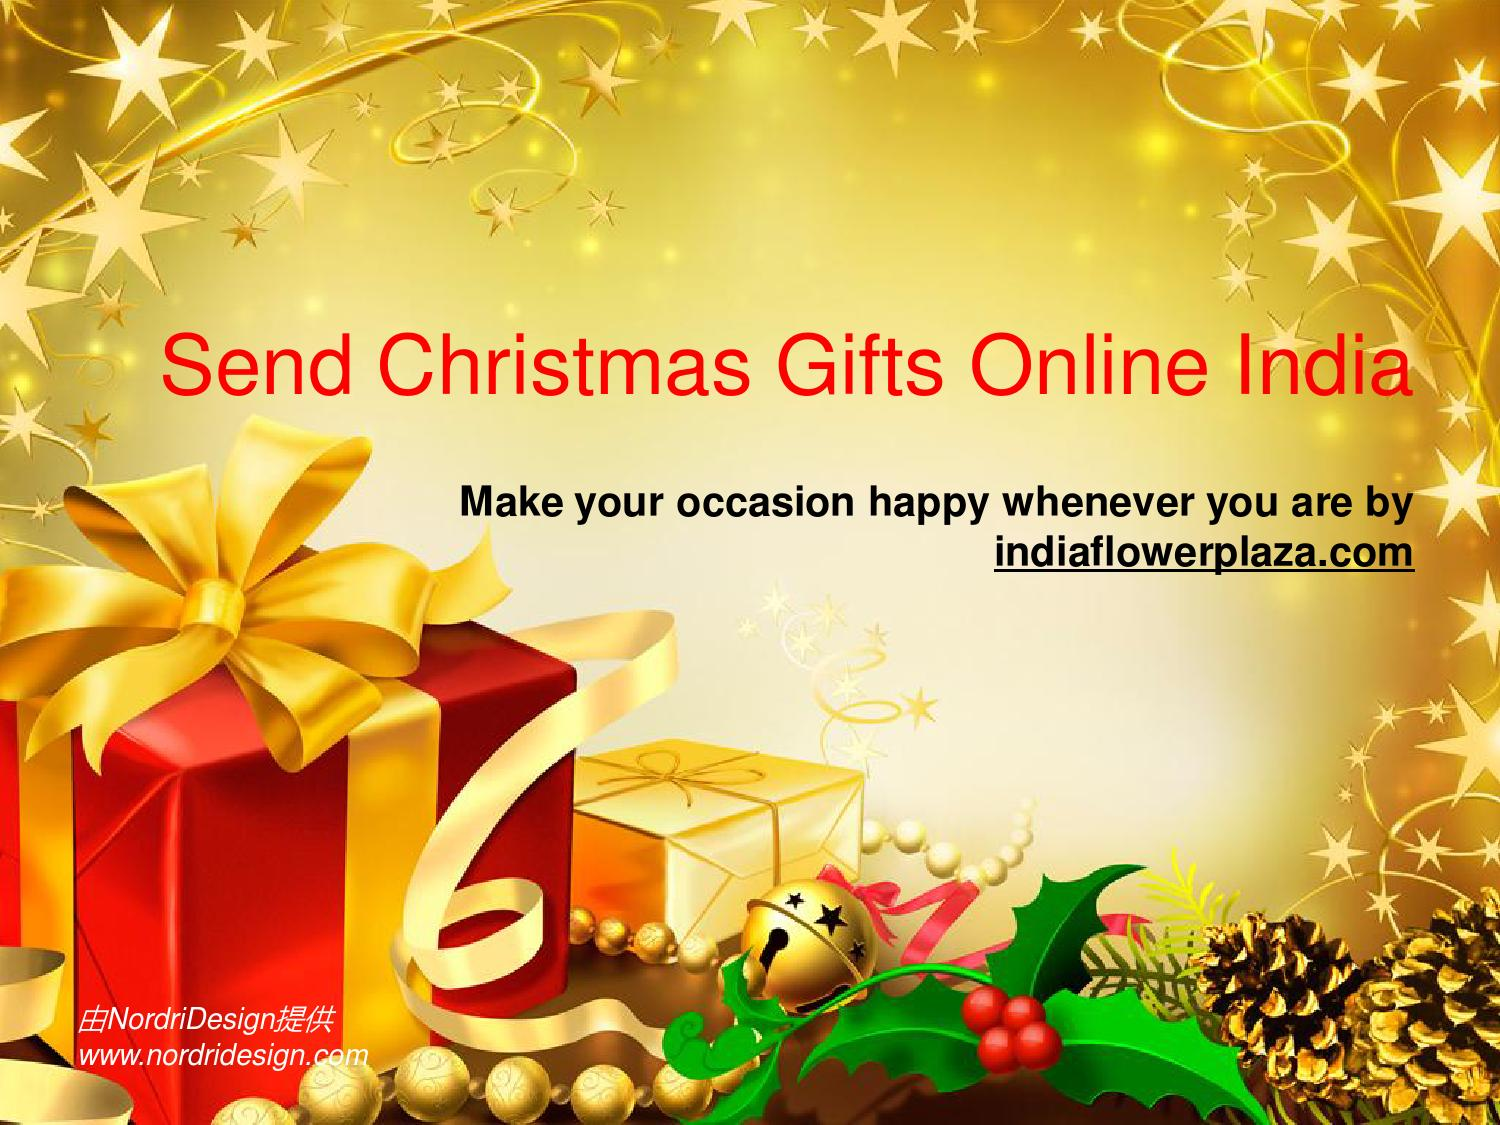 Send christmas gifts online india by inlkhfaza - issuu